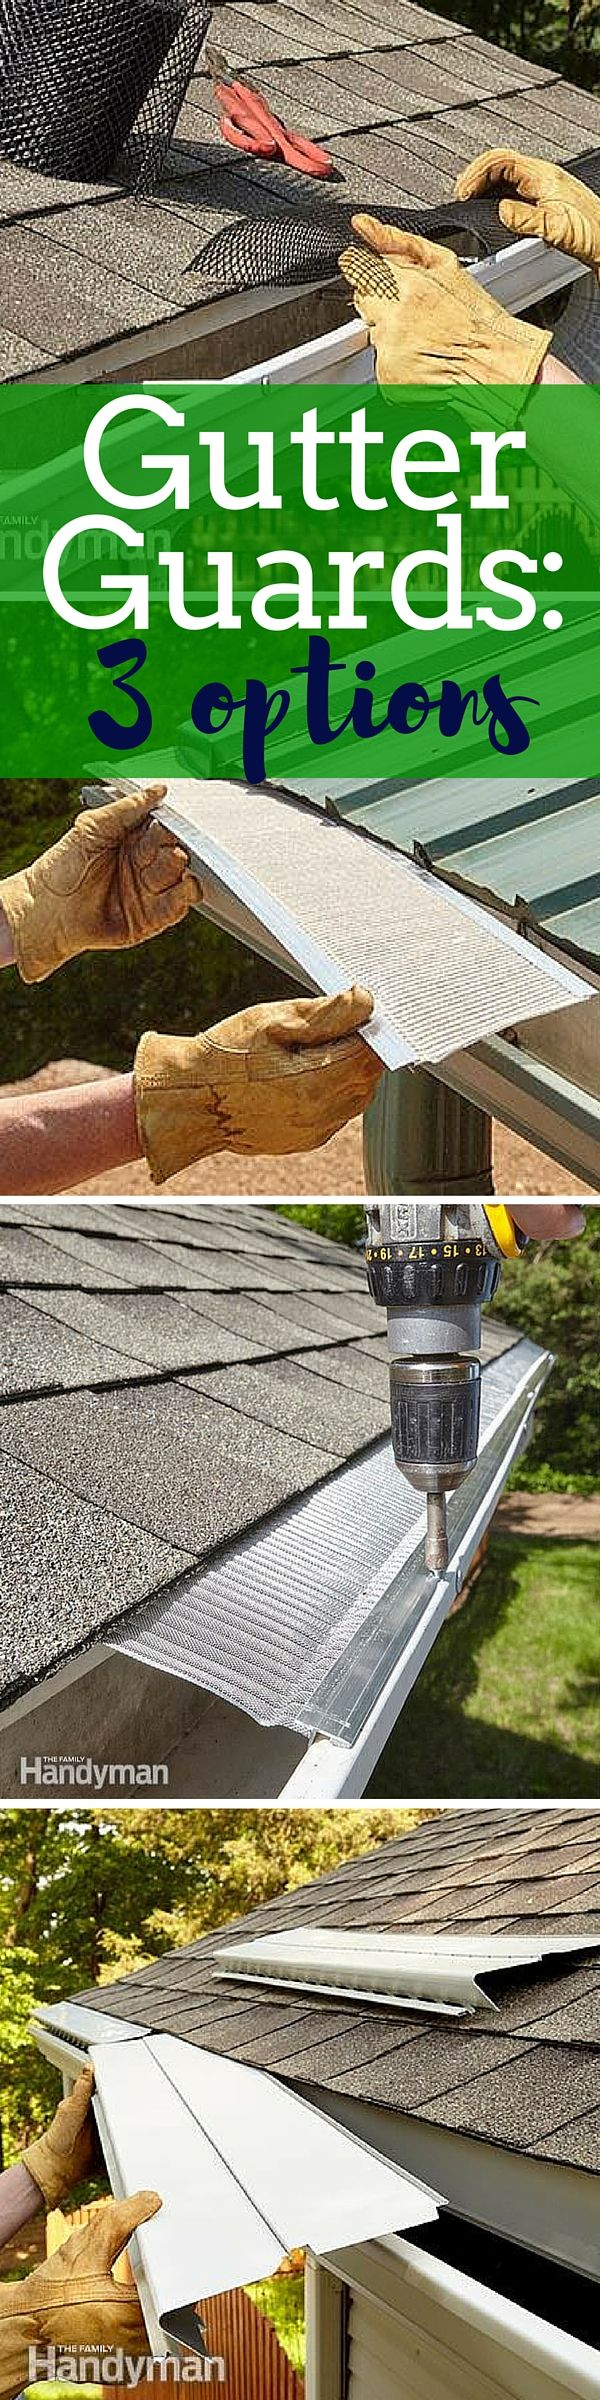 The Best Leaf Guard Gutters For Your Home. Gutter GuardsHouse RepairRoof ...